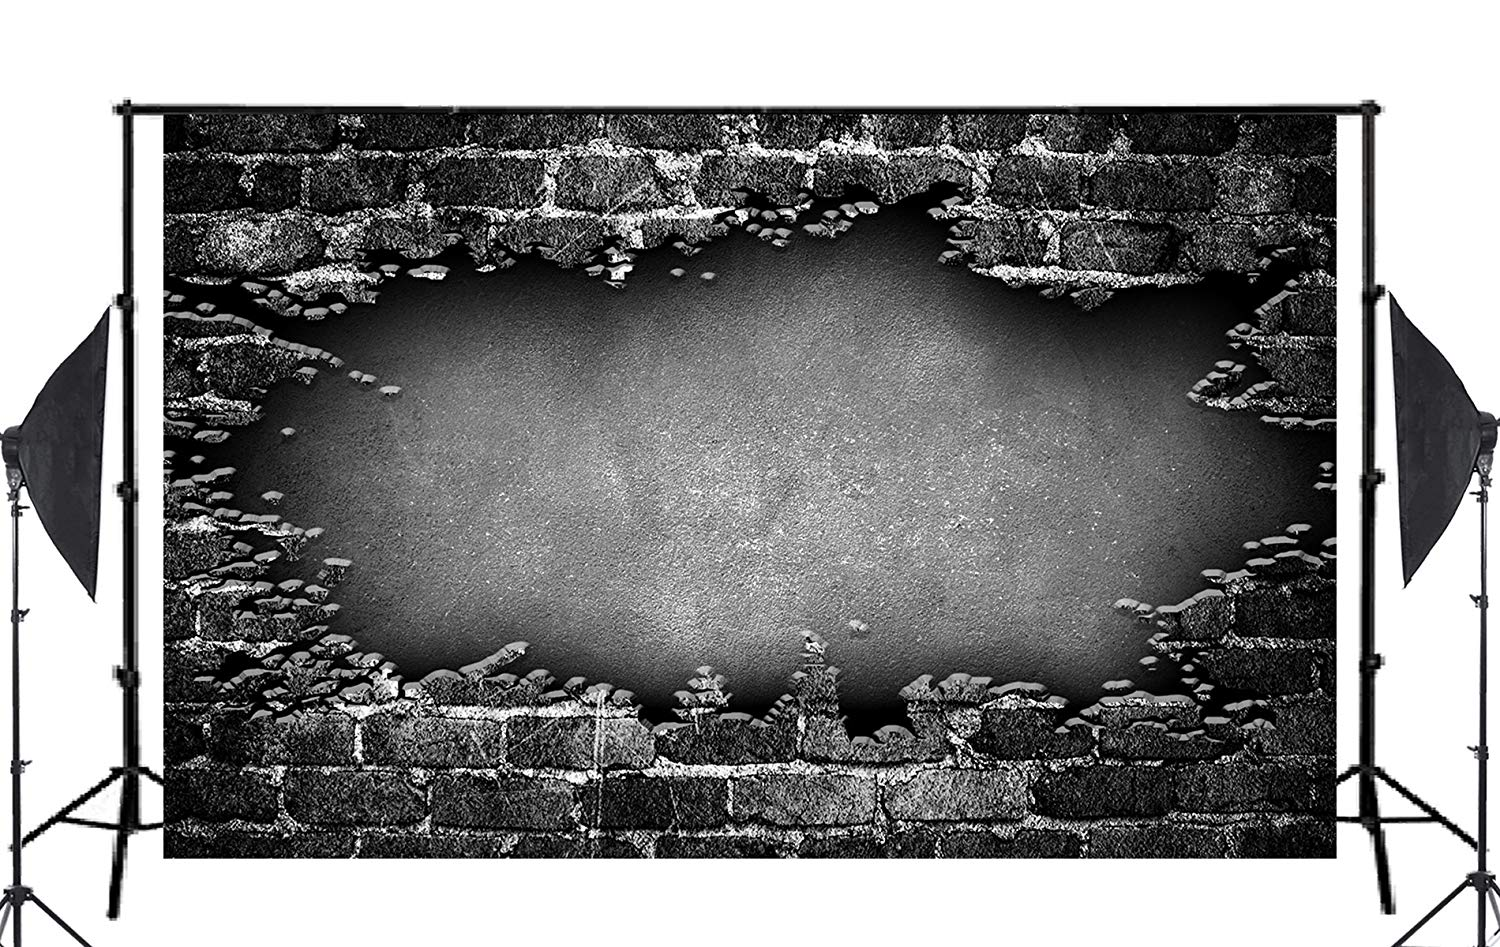 Dark Wall Mosaic Broken Floor Brick Wall Photo Background Children Studio Retro Photography Props 150x220cm in Photo Studio Accessories from Consumer Electronics